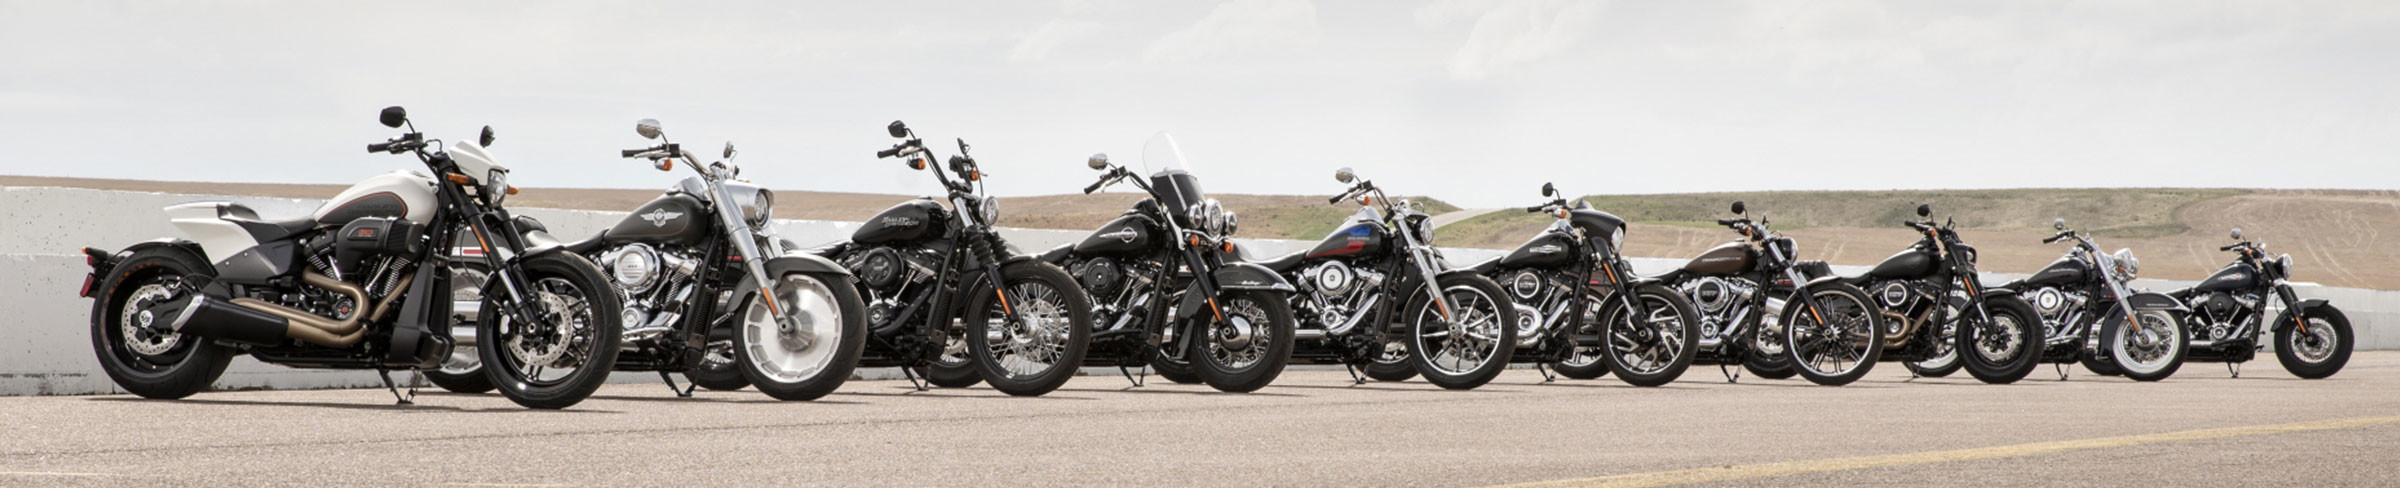 New Inventory at Stutsman Harley-Davidson®